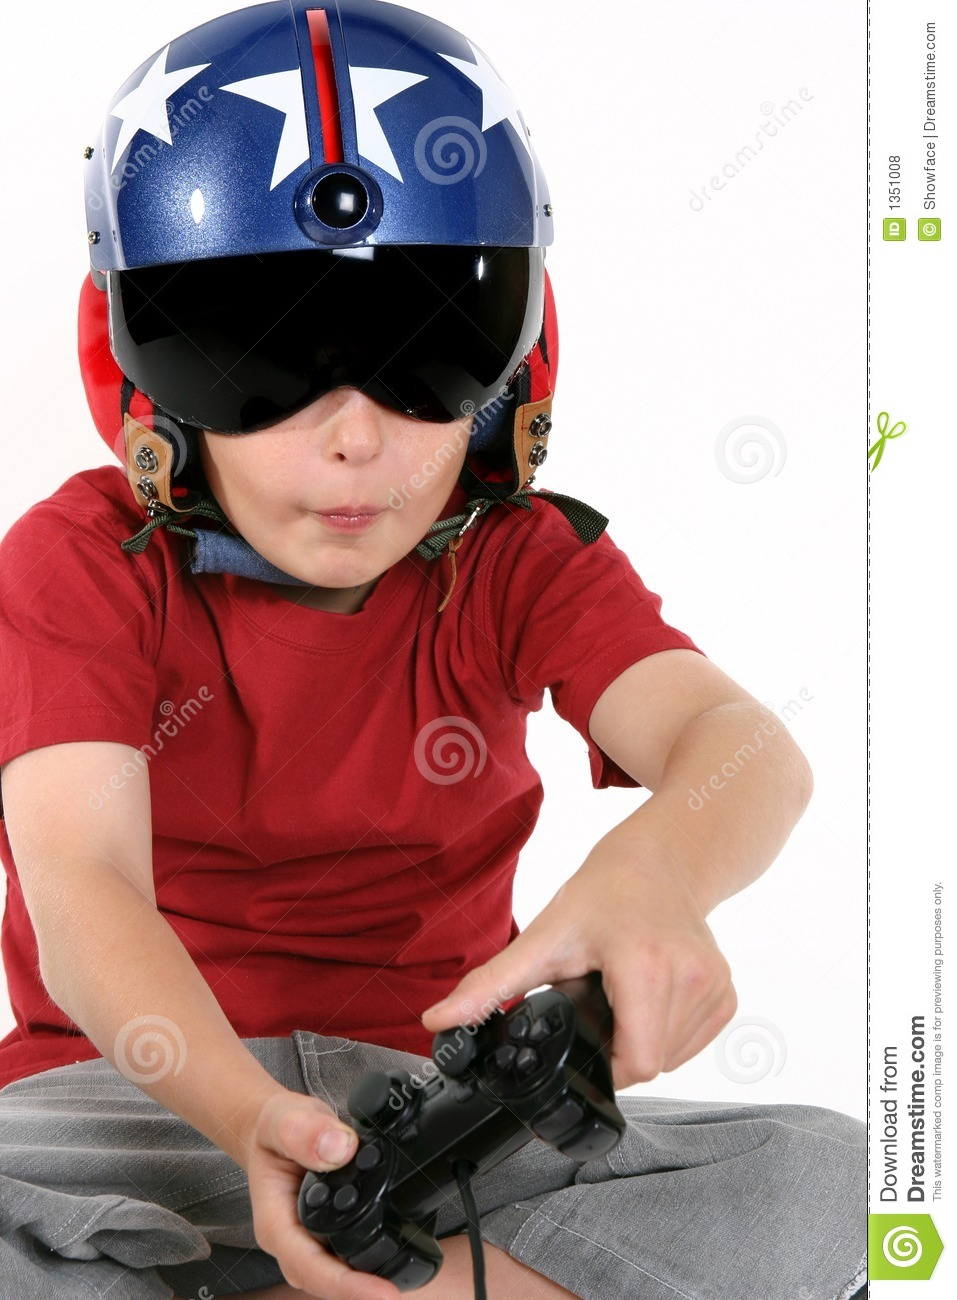 helicopter toys for boys with Royalty Free Stock Photos Child Helmet Playing Flight Simulator Image1351008 on Royalty Free Stock Photos Child Helmet Playing Flight Simulator Image1351008 as well Stock Illustration Baby Boy Items Set Collection Baby Shower Icons Cute Little Cartoon Design Elements Vector Image40976747 as well Lego City 2017 Summer Sets Round furthermore 1542268023 additionally Imaginext Batman Batcave.